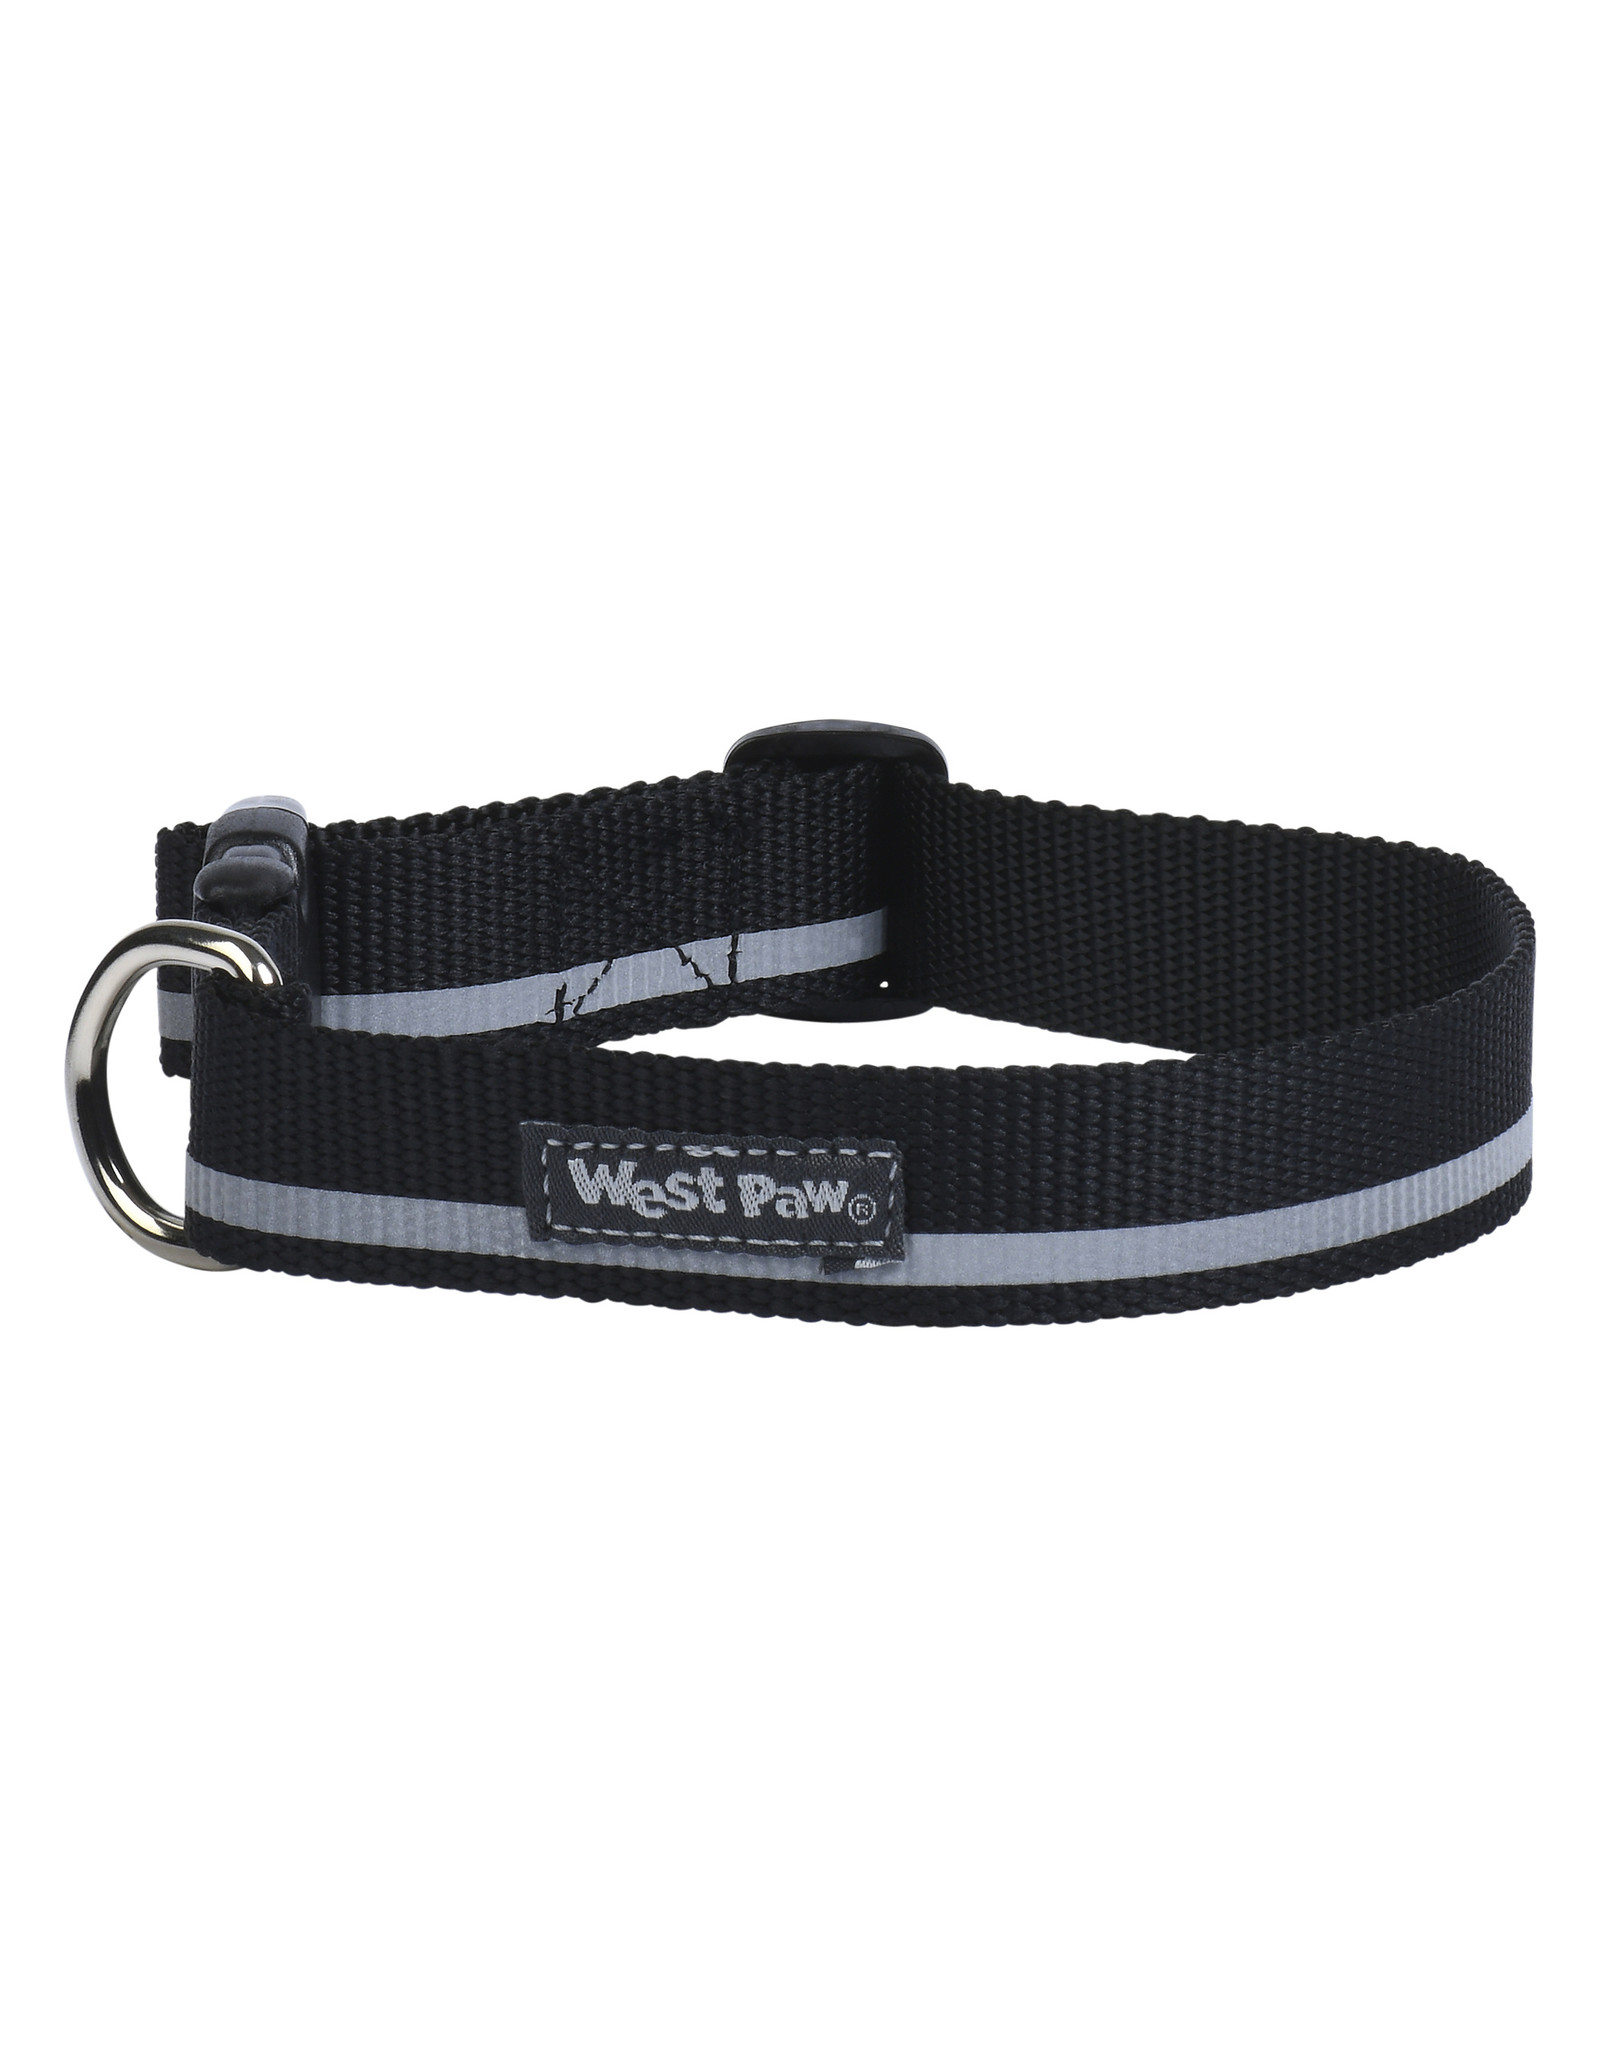 West Paw Designs Westpaw: Strolls Collar Small Black Reflective